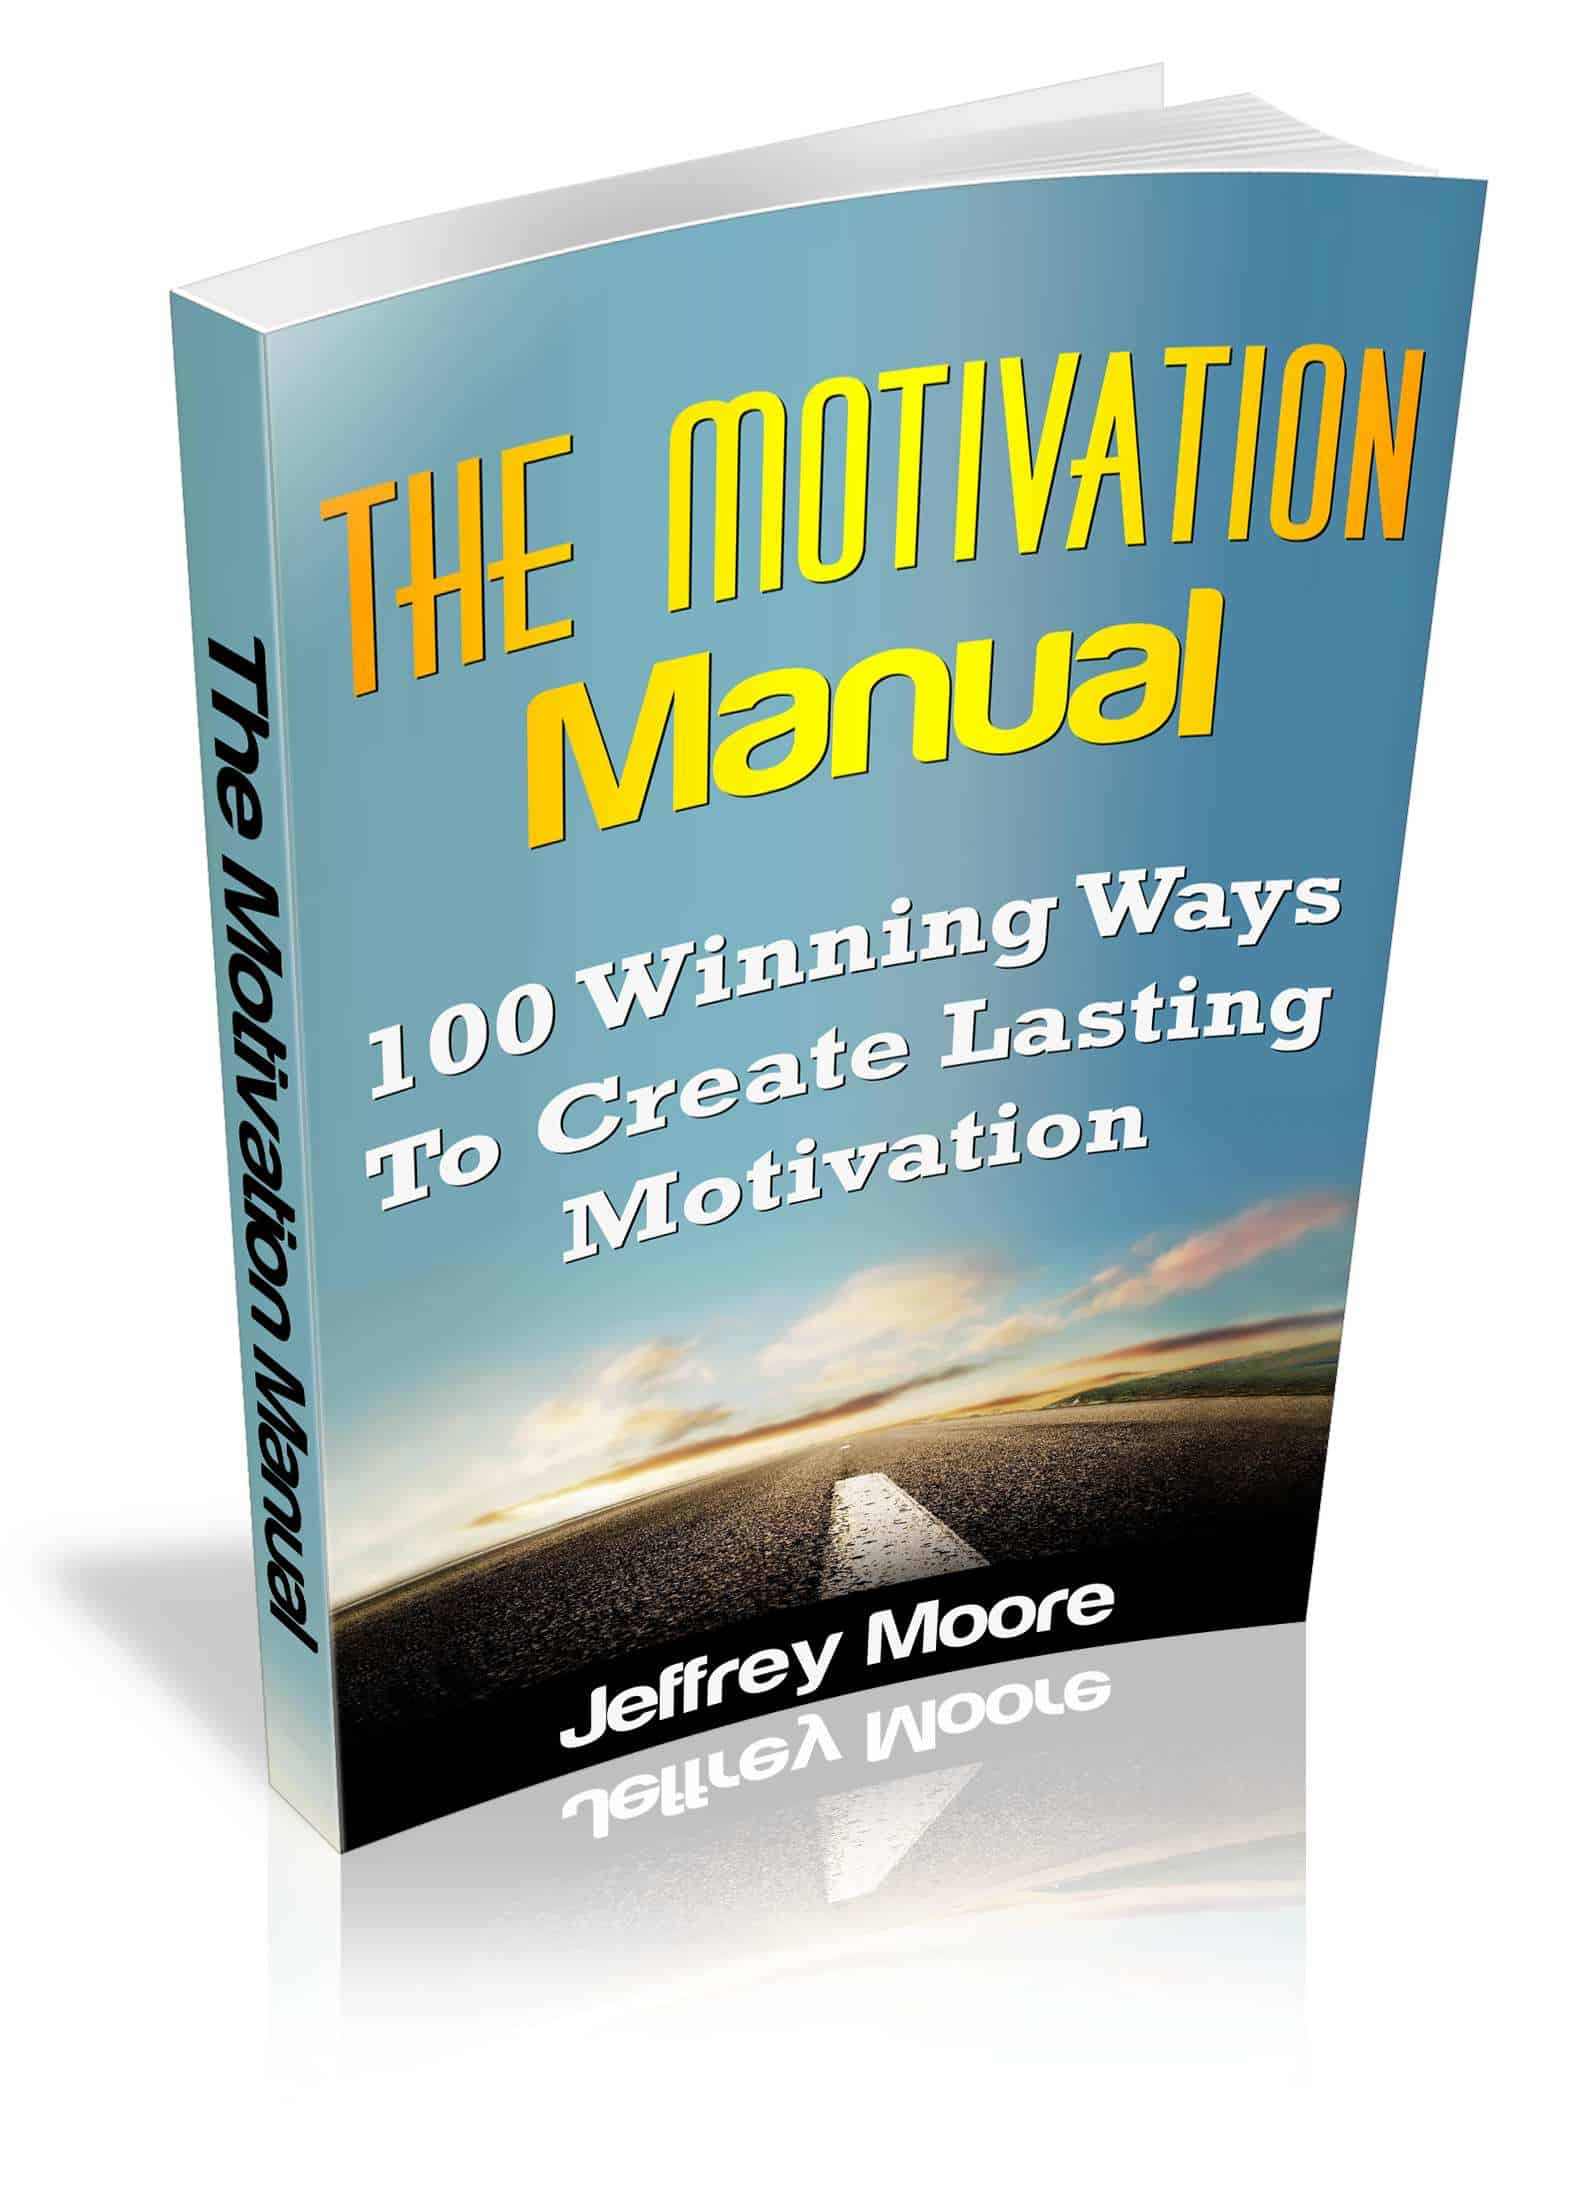 The Motivation Manual: 100 Winning Ways To Create Lasting Motivation